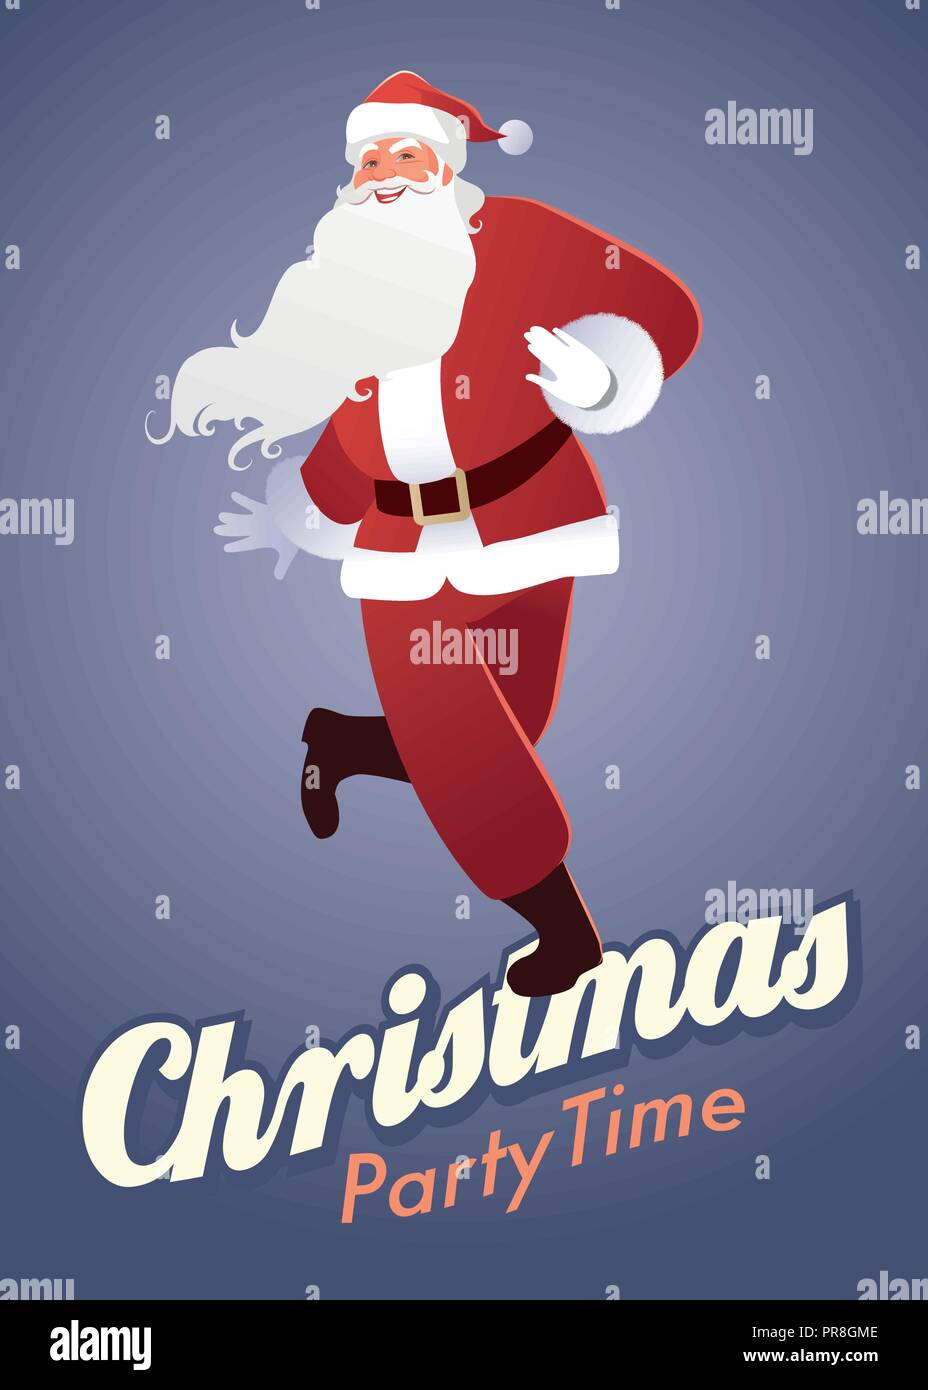 Christmas Party Time Images.Christmas Party Time Funny Santa Claus Dancing Swing